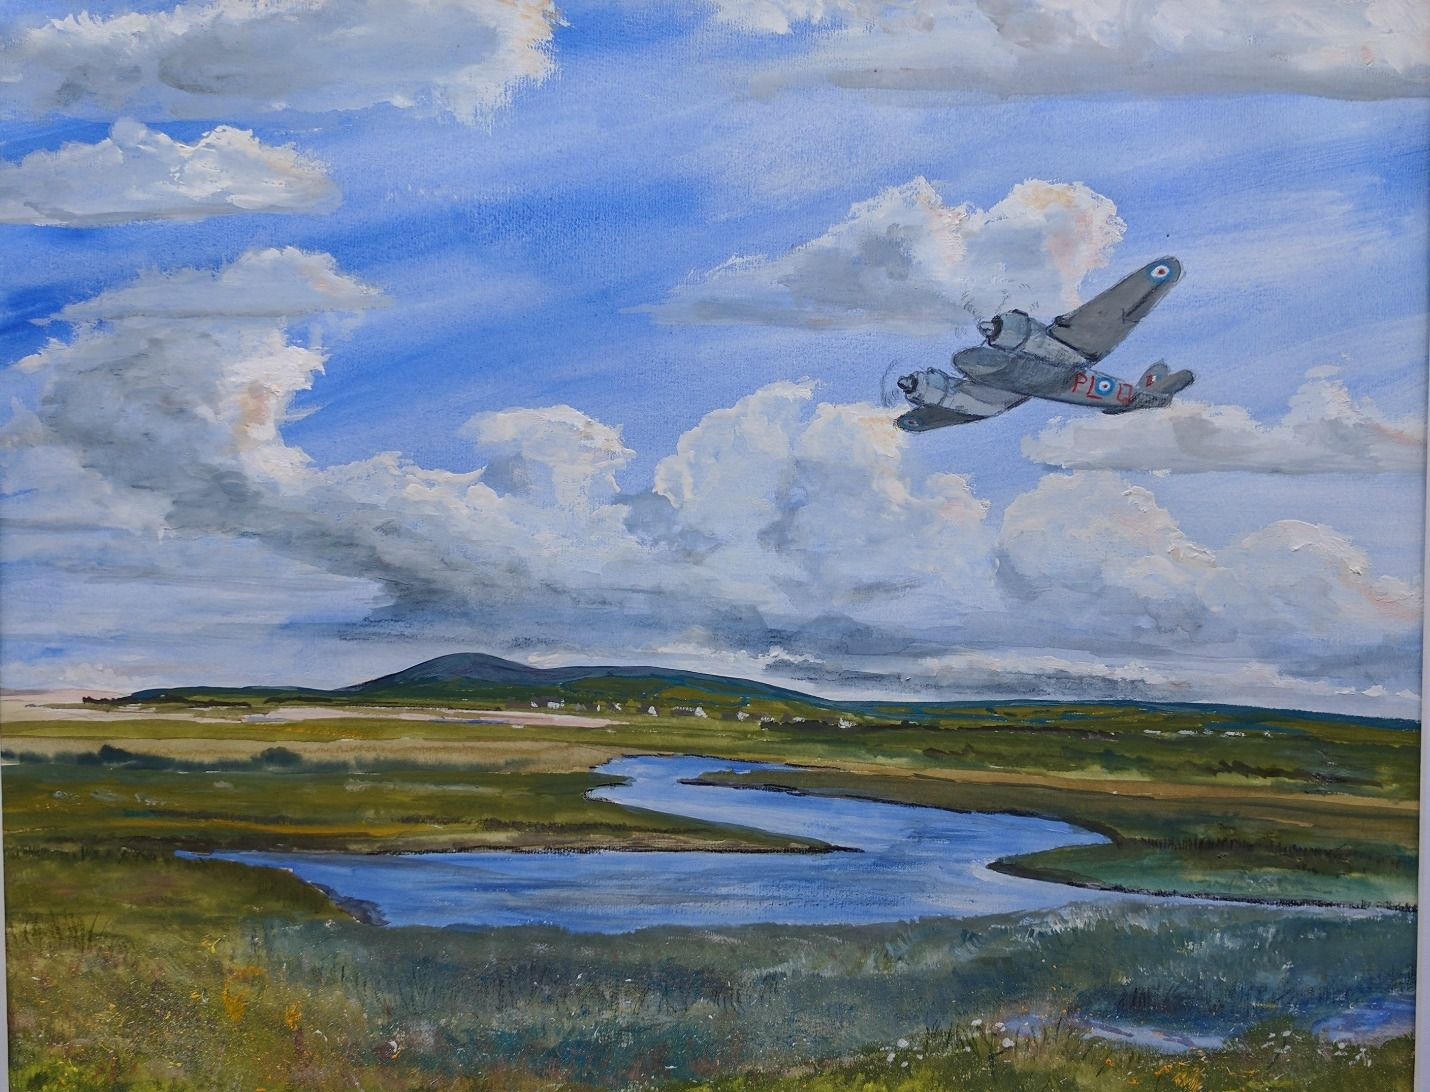 Beaufighter circling over Dallachy. In gouache. Just an impression...If you would like a print of this, then get int touch, will you? There are more of our  Scottish landscape prints  on that link.